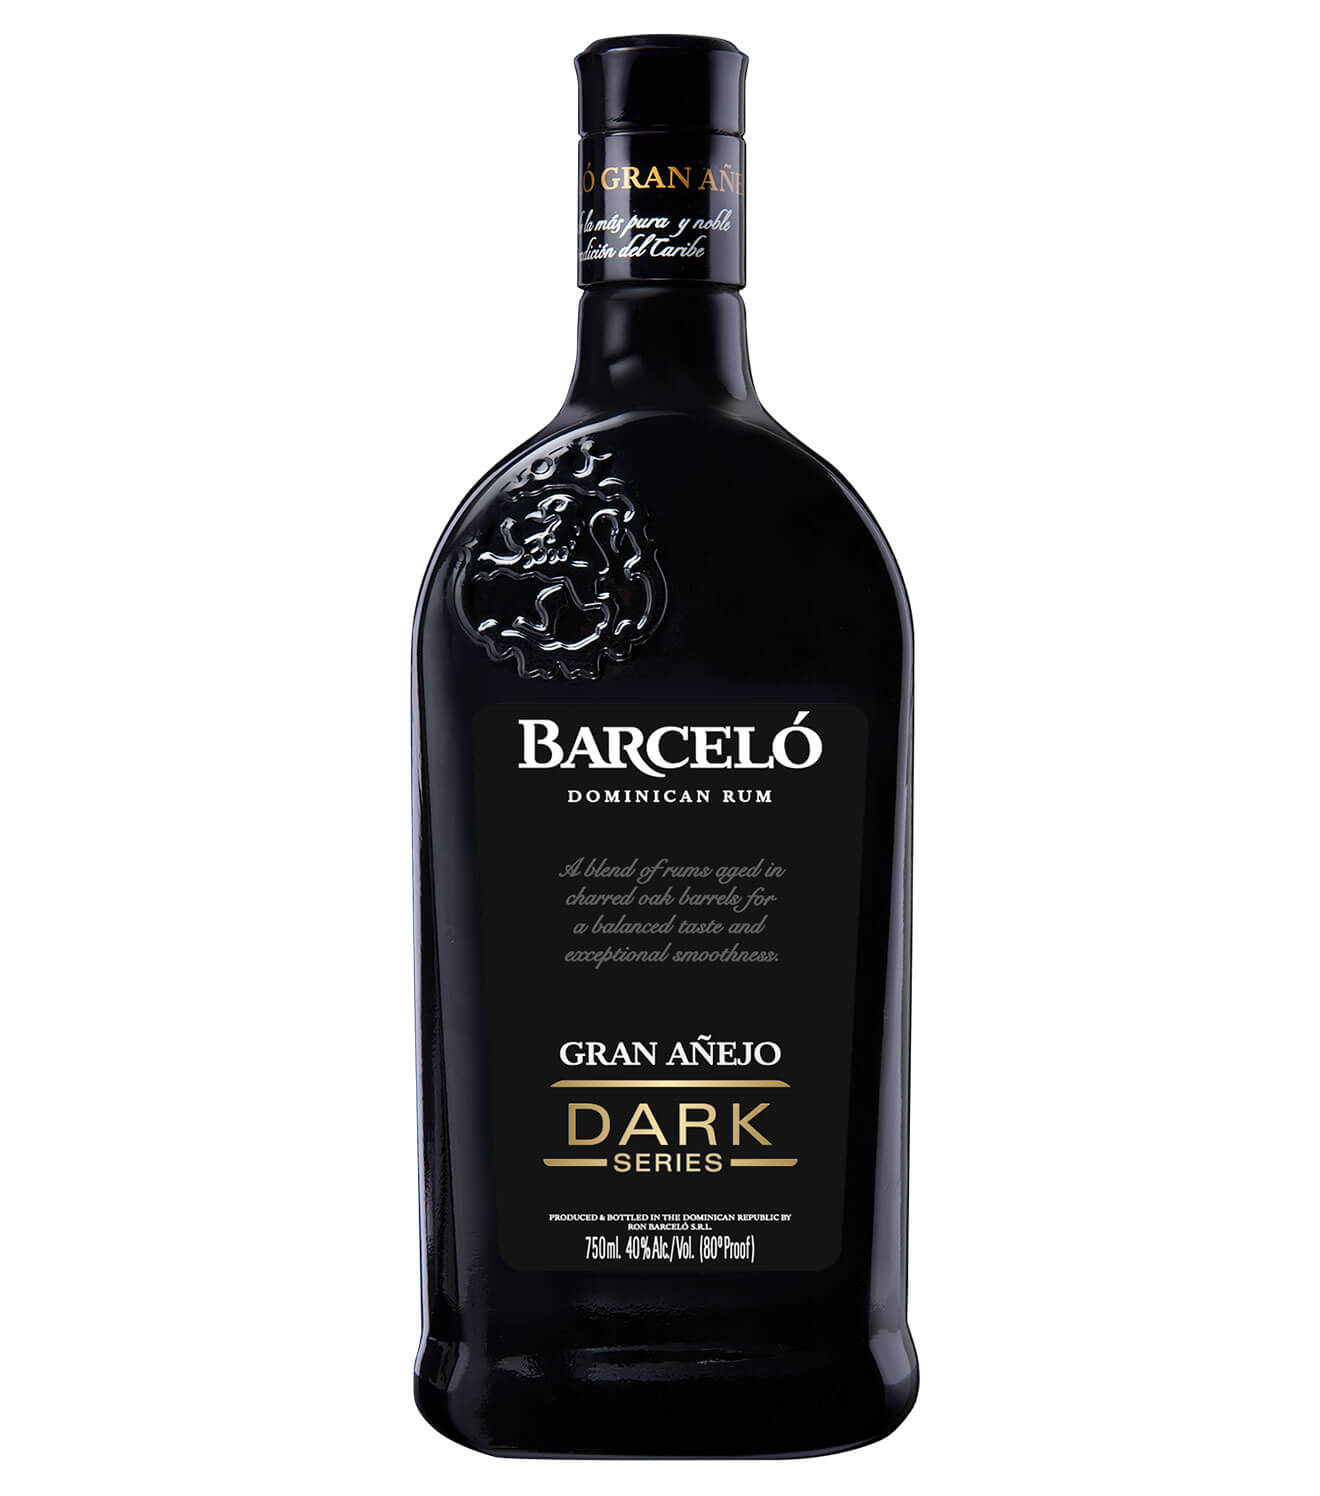 Ron Barceló Gran Aَñejo Dark Series, bottle on white